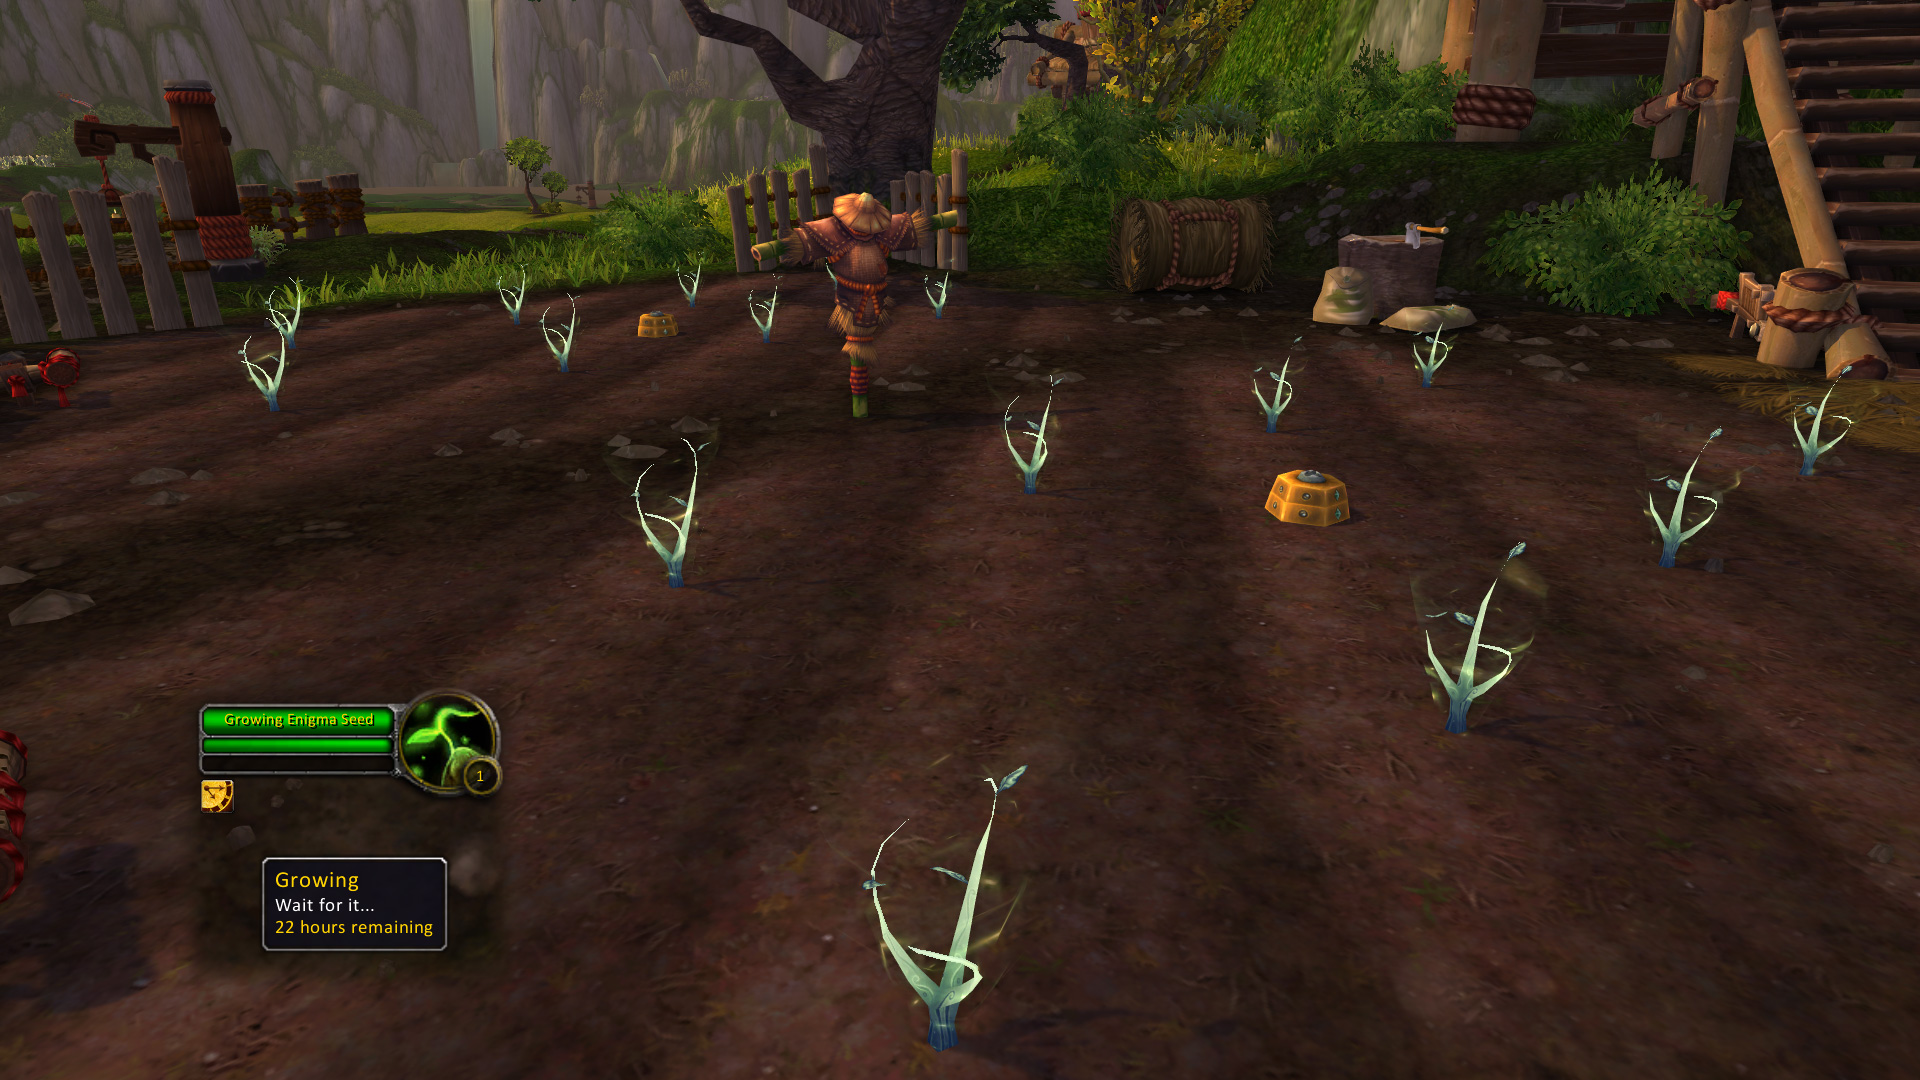 MoP: War: is it really? Or is it fake? [Archive] - Zygor